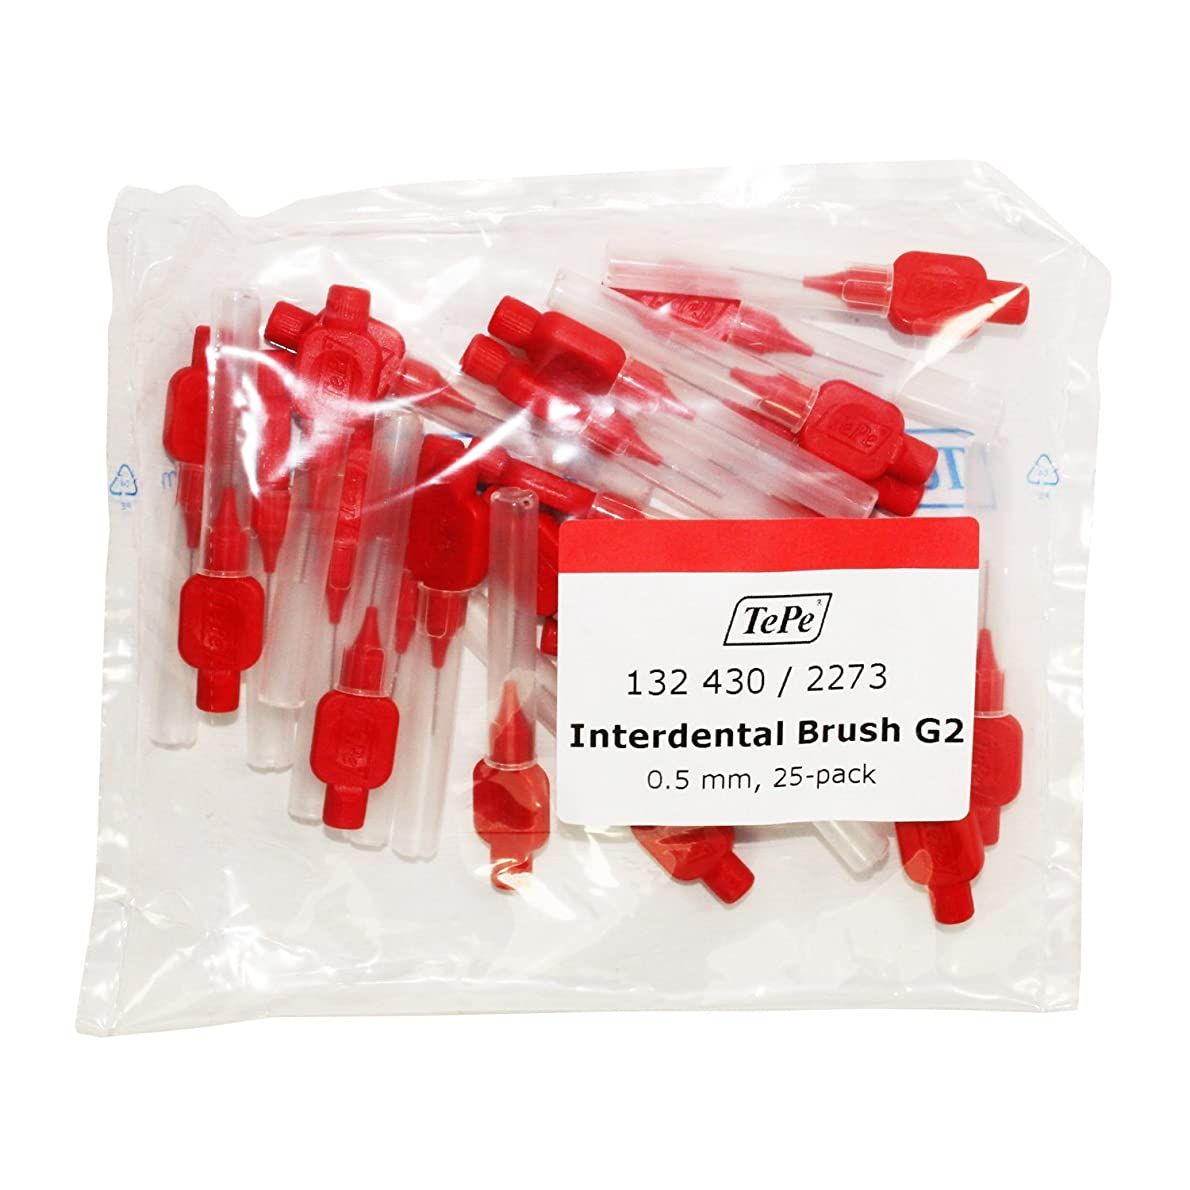 期待して先有害Tepe Interdental Brush G2 0.5mm Red x 25 Brushes in One Pack by TePe